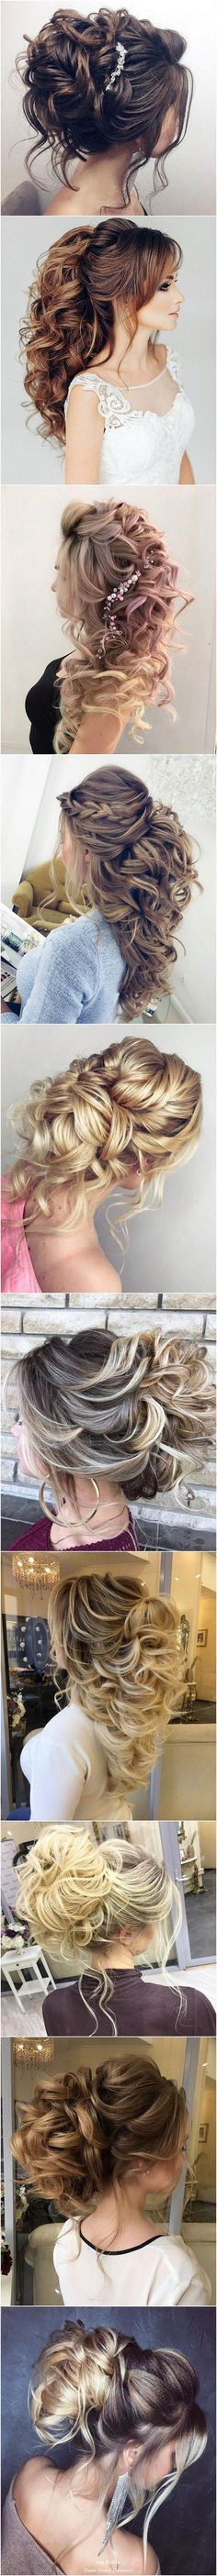 Coiffure De Mariage : Description Elstile Long Wedding Hairstyle Inspiration / www.deerpearlflow…